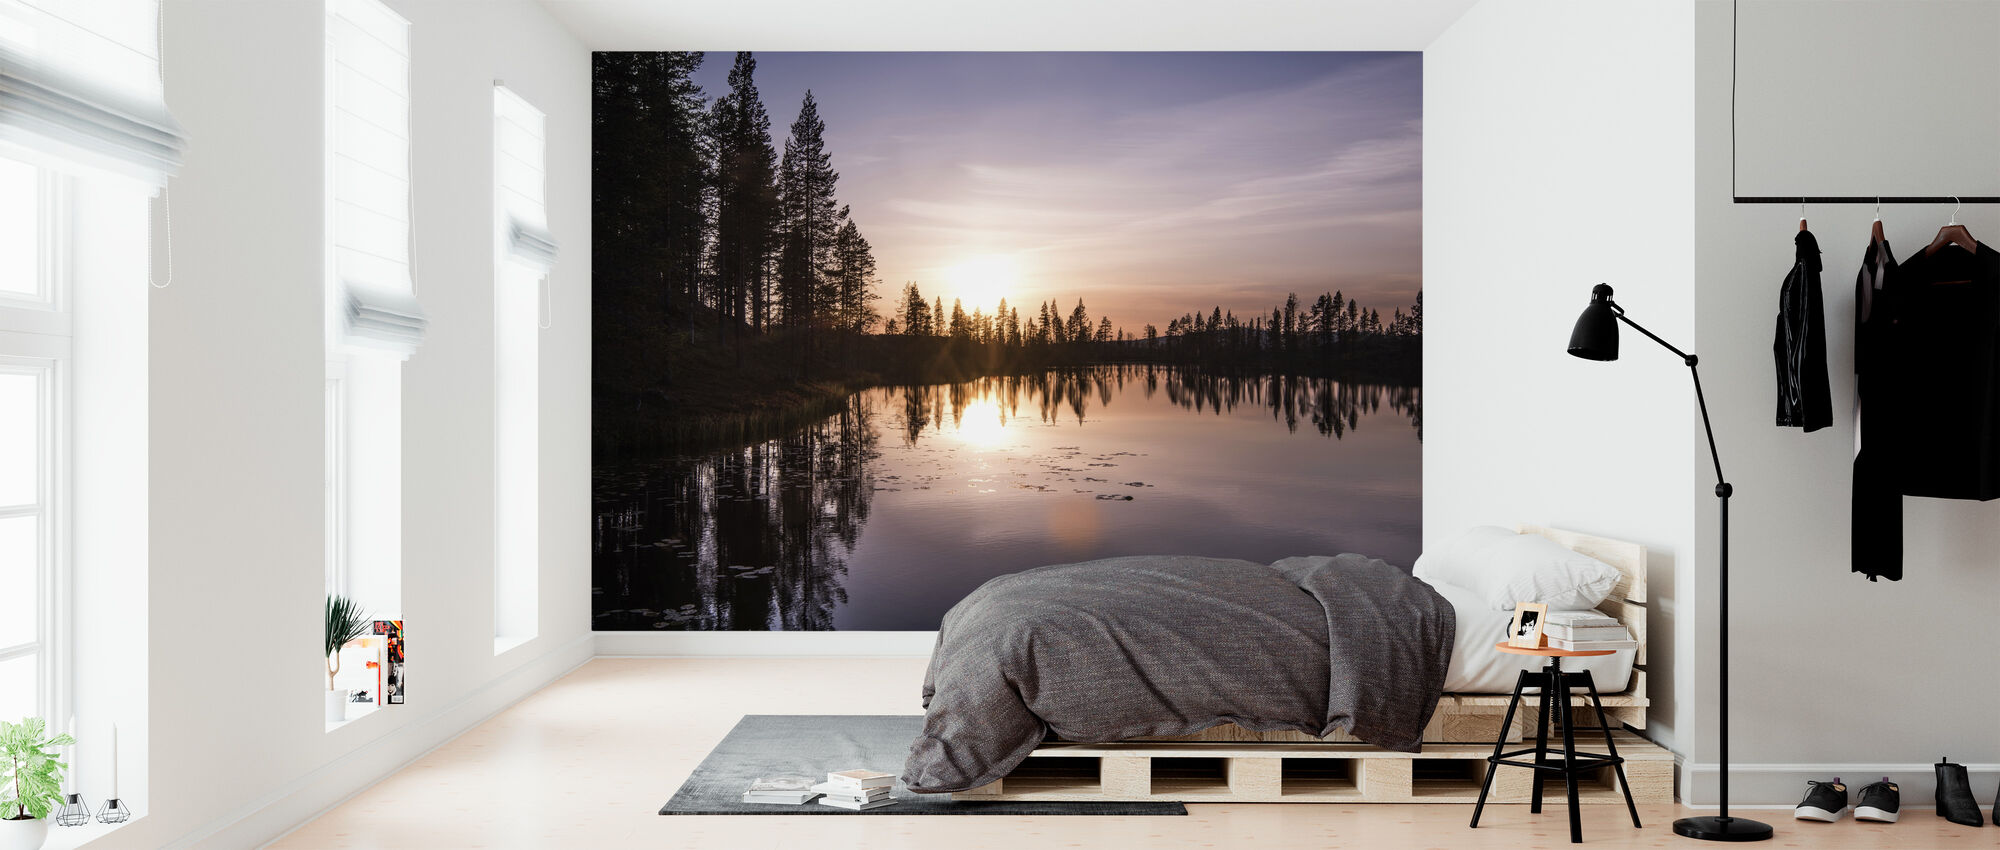 The Lake of Love - Wallpaper - Bedroom